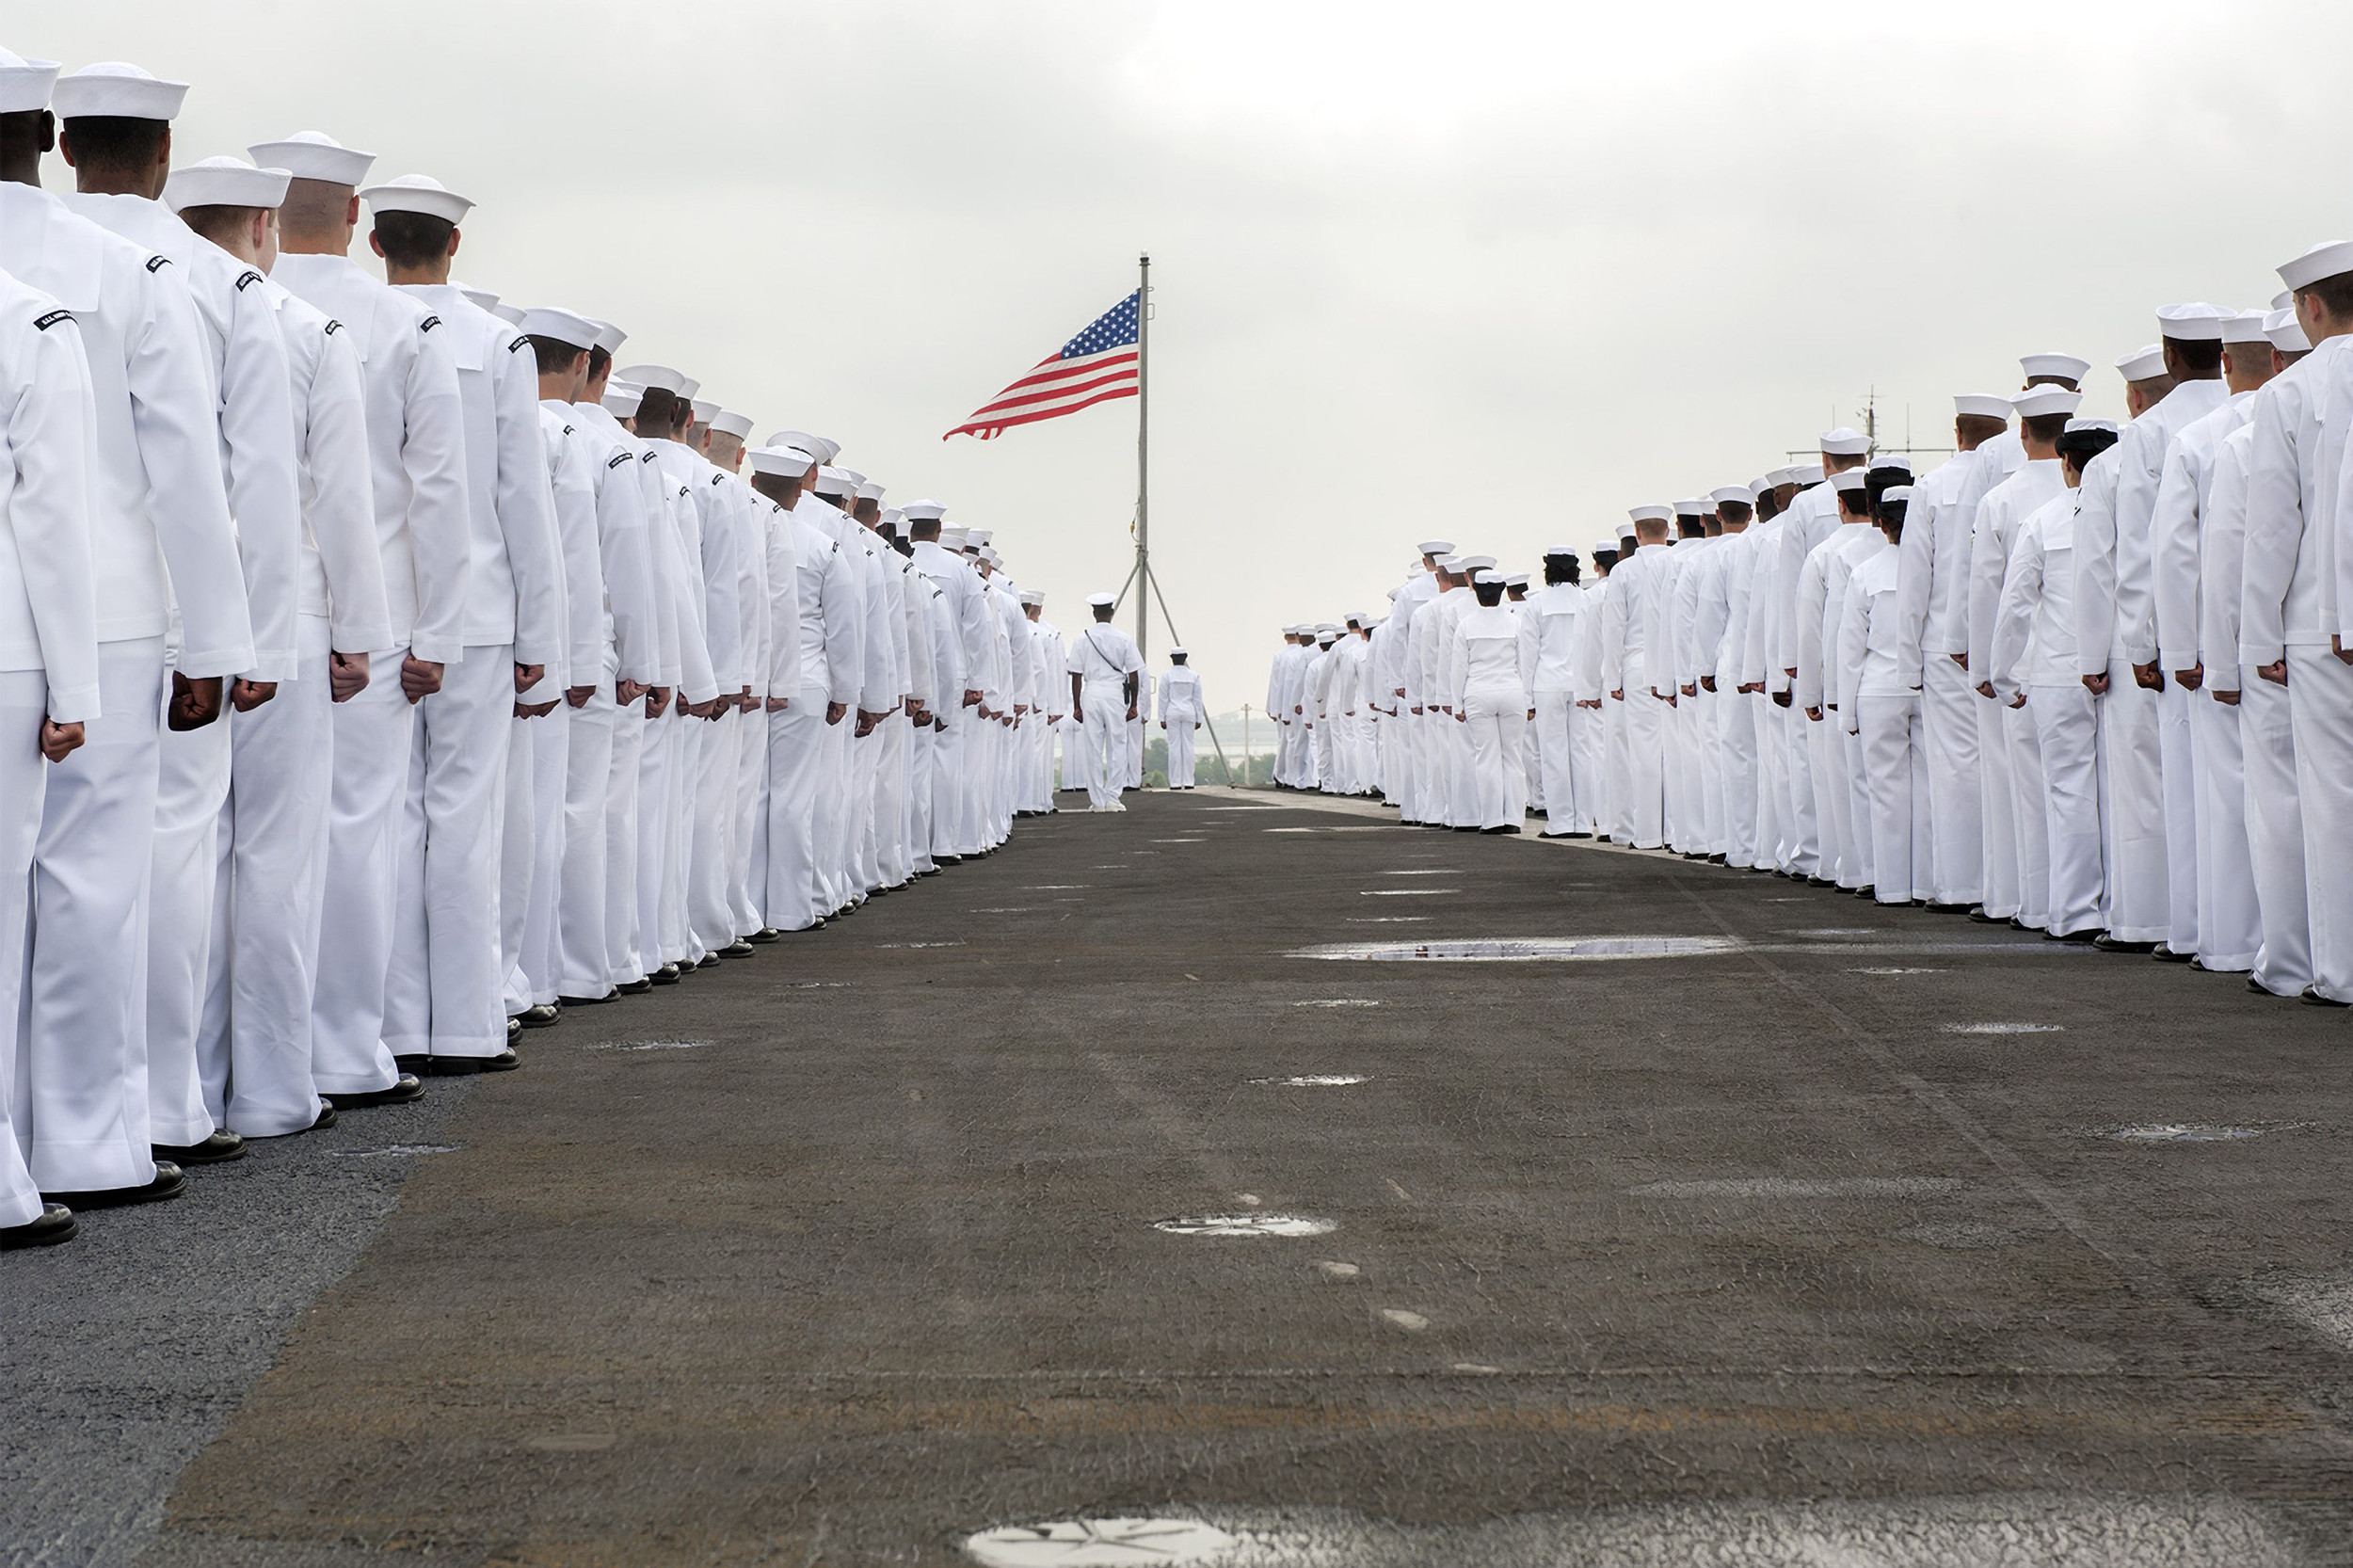 Gilday nominated to be next chief of naval operations